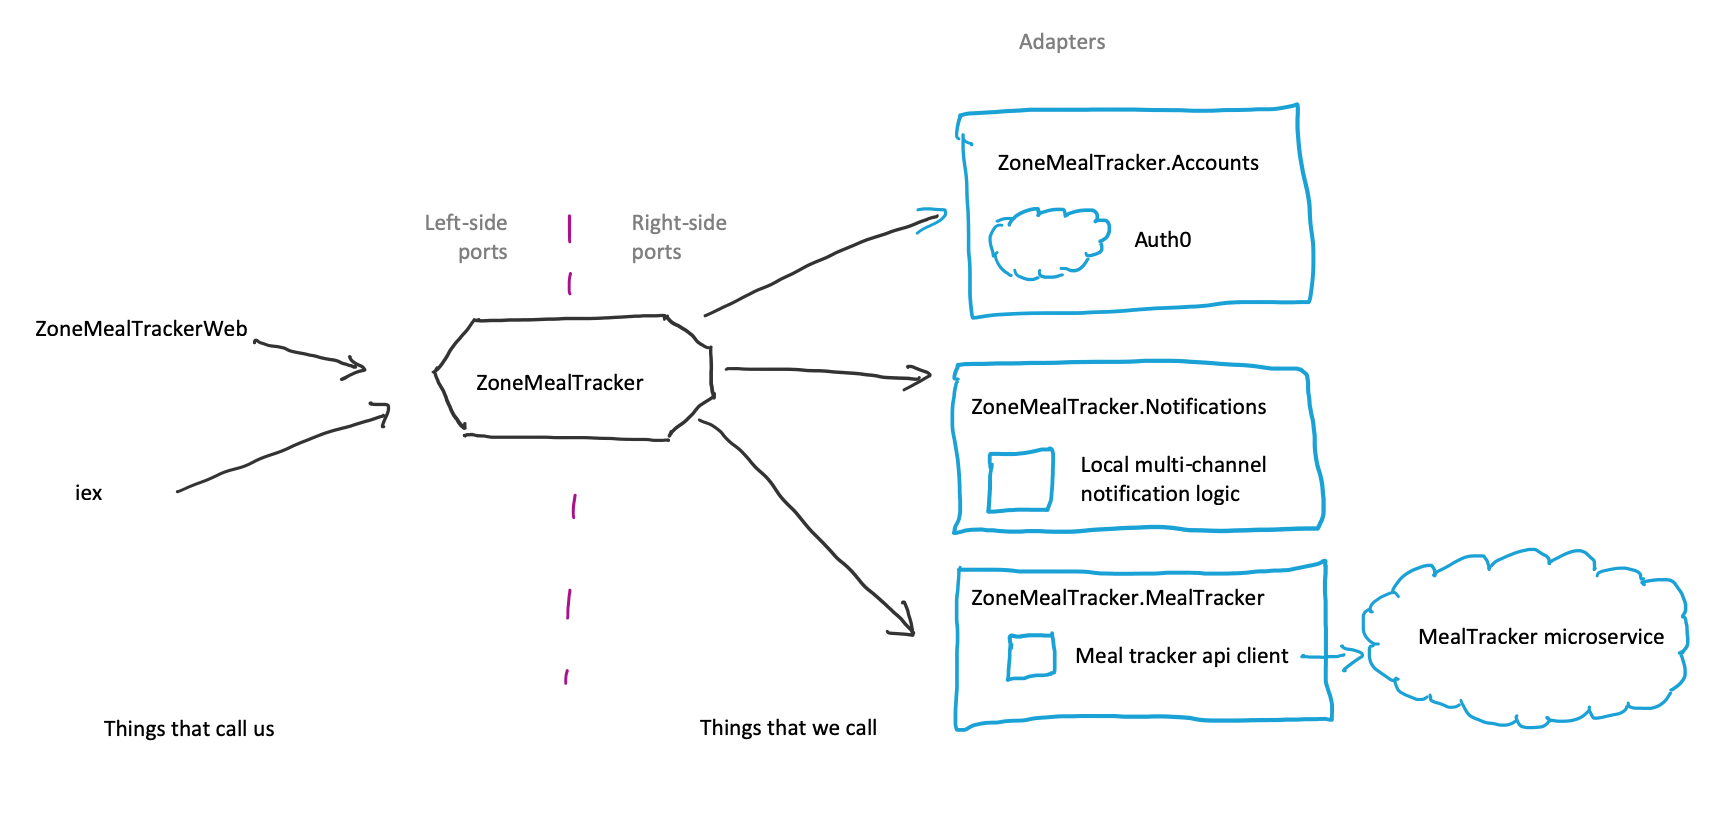 Hexagonal architecture diagram of ZoneMealTracker with new adapters